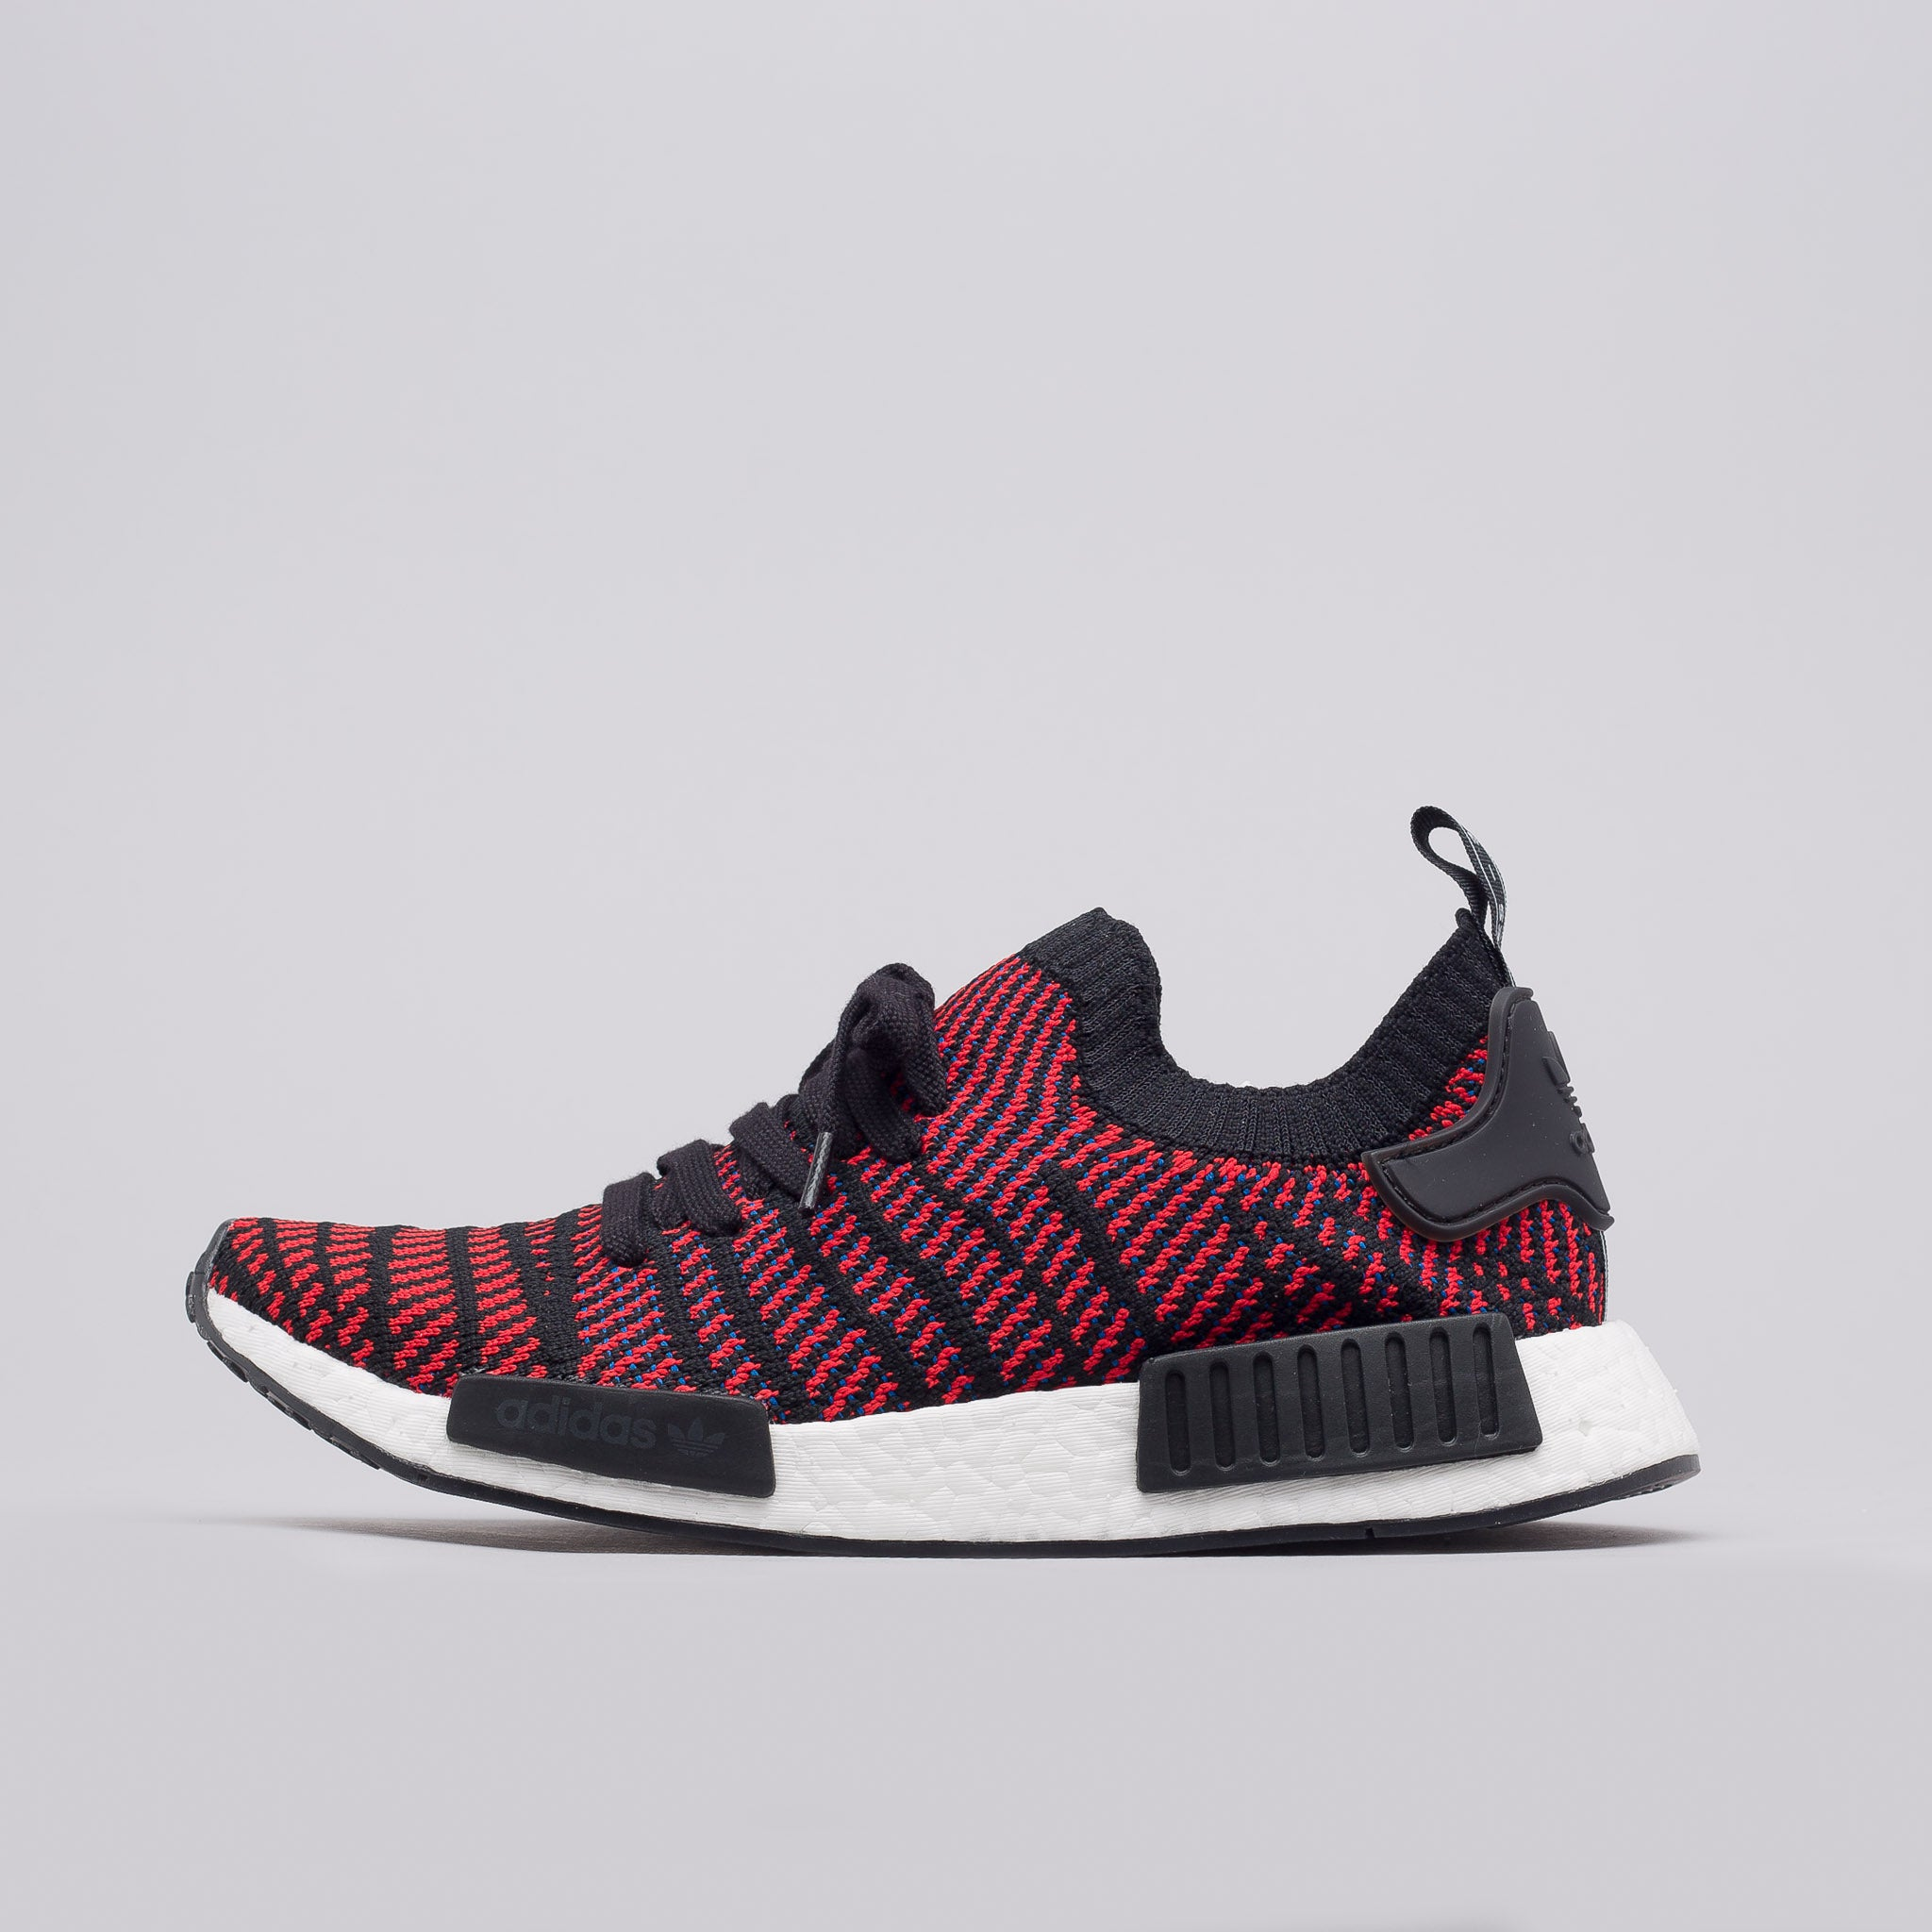 New Adidas NMD R1 Women`s Raw Salmon Vapour Pink Runner